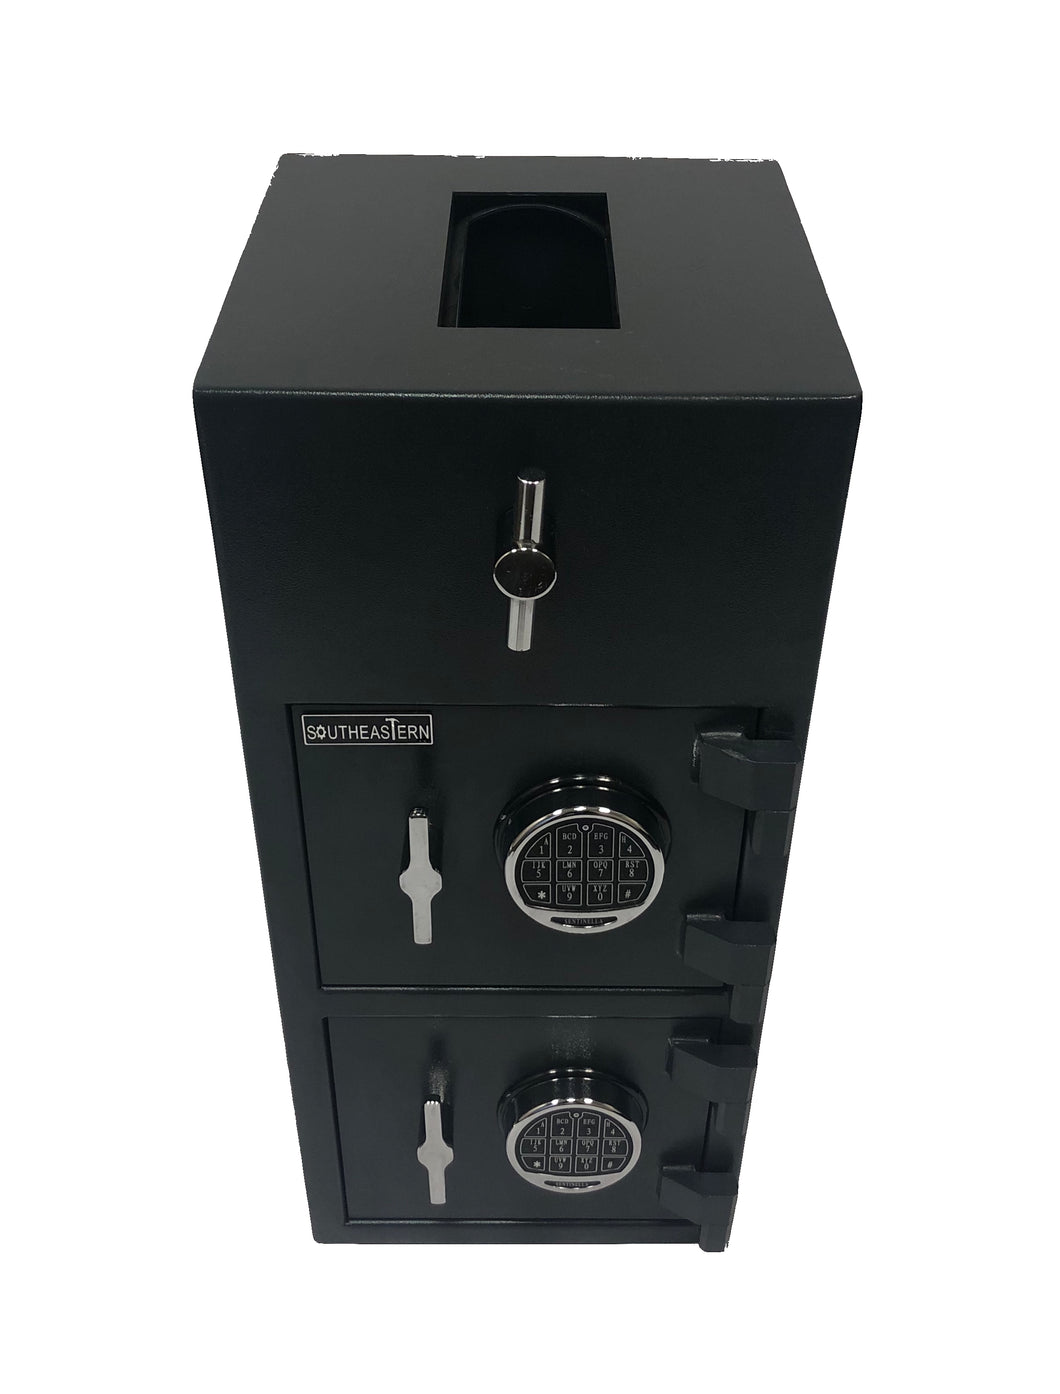 SOUTHEASTERN RH3214EE Double door drop depository security Safe with Quick Digital Lock w/ back up key